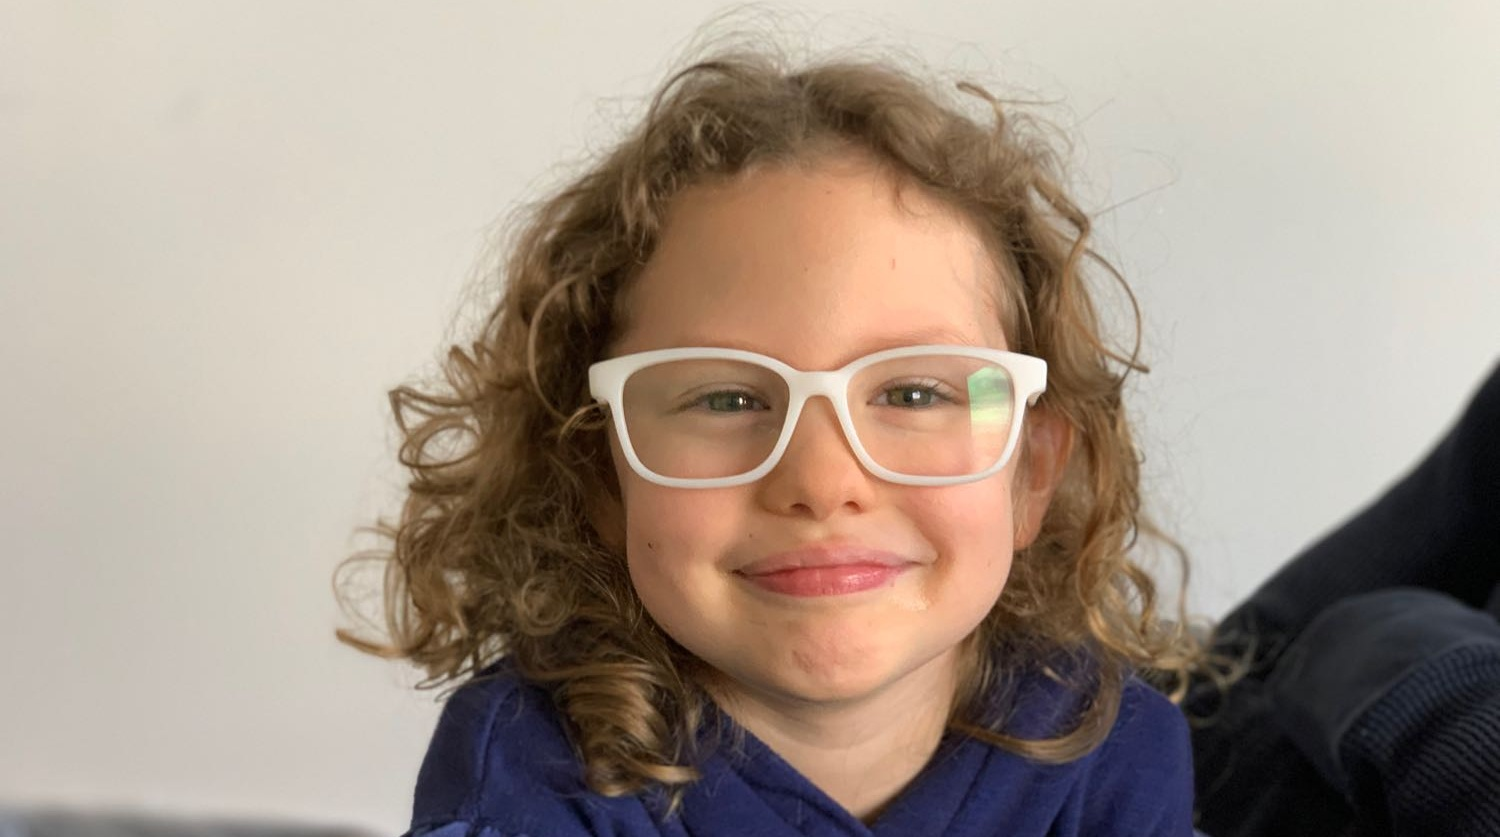 "It's so fun and easy! - ""After visiting several stores and spending over $300 on my 5 year-old's glasses, they still didn't fit her face properly. With Fitz, we got glasses that were the perfect fit and also saved us a lot of time and money.""- Rachel"